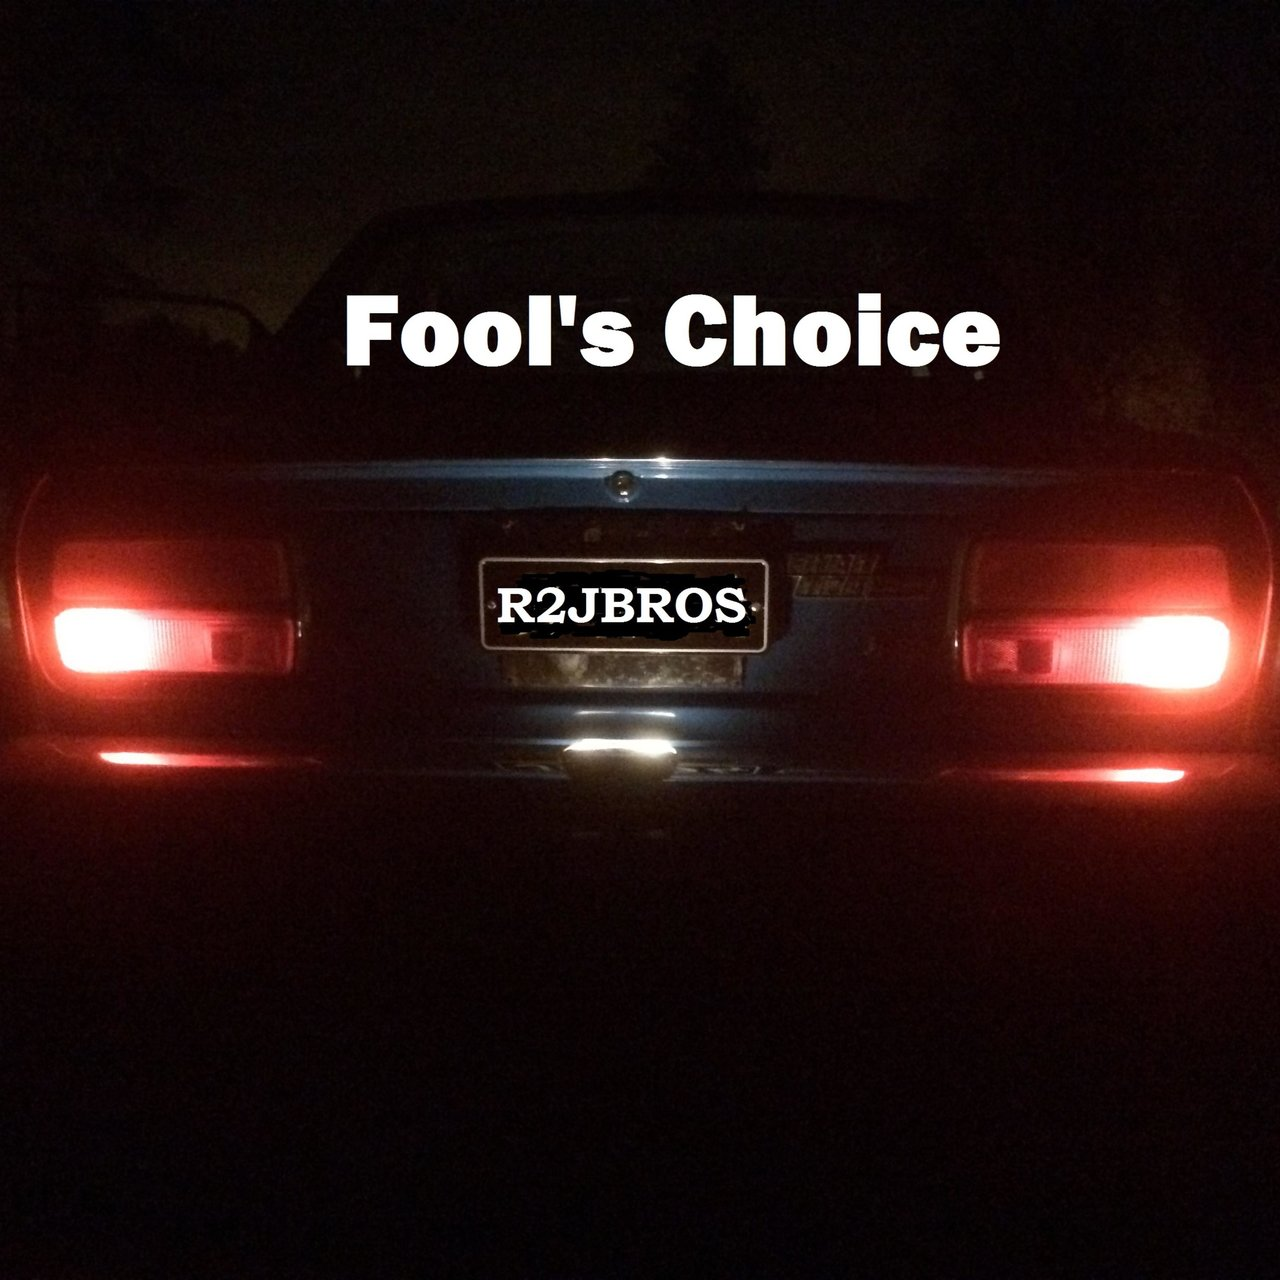 Fool's Choice